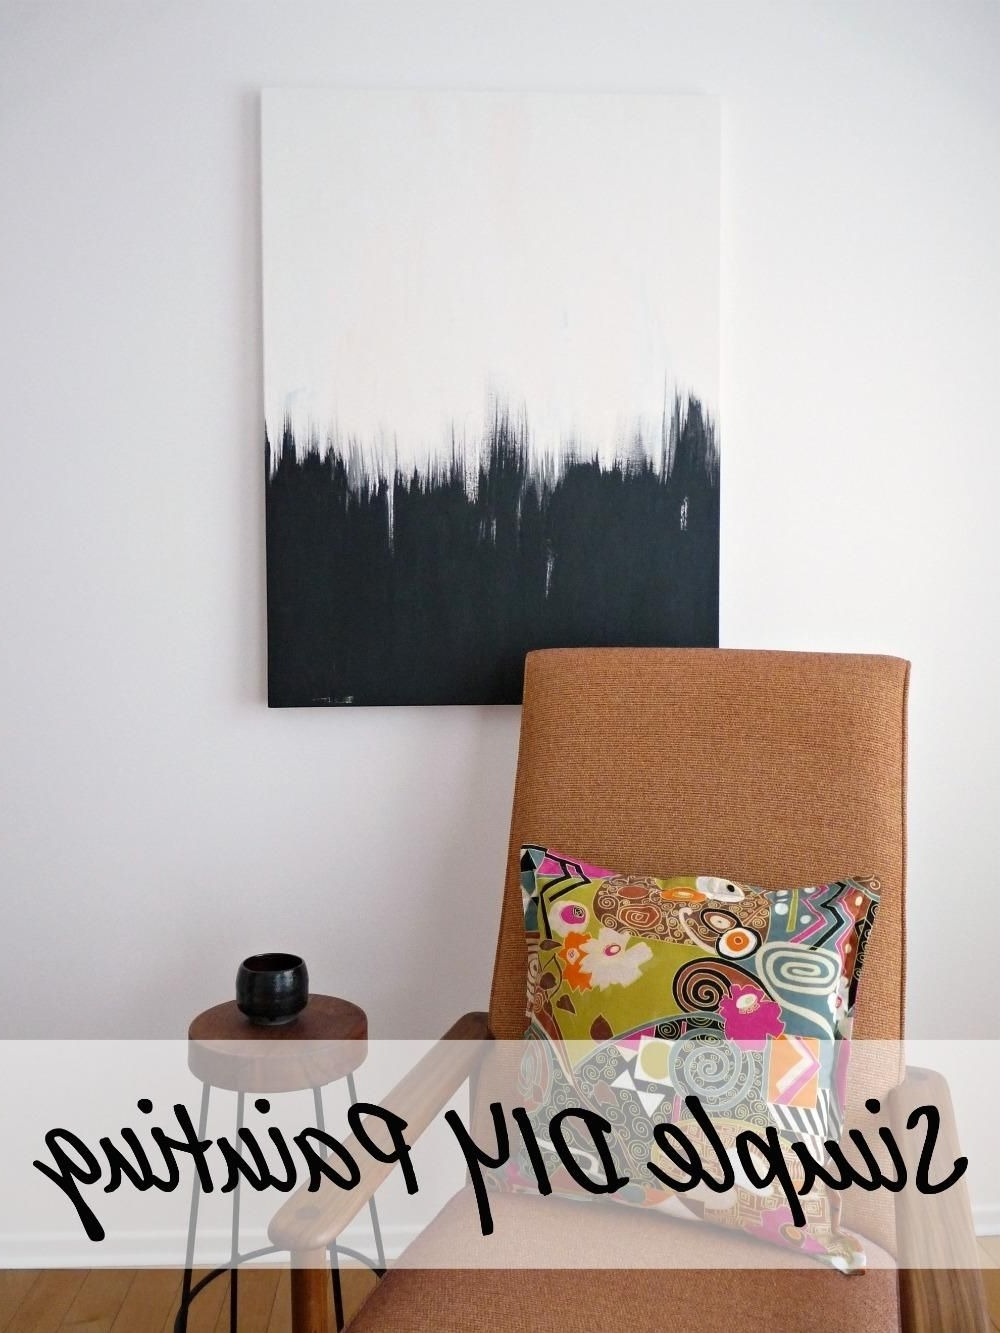 Diy Wall Art: Simple But Striking Diy Black And White Wall Art Regarding Most Recent Diy Wall Art (View 8 of 15)